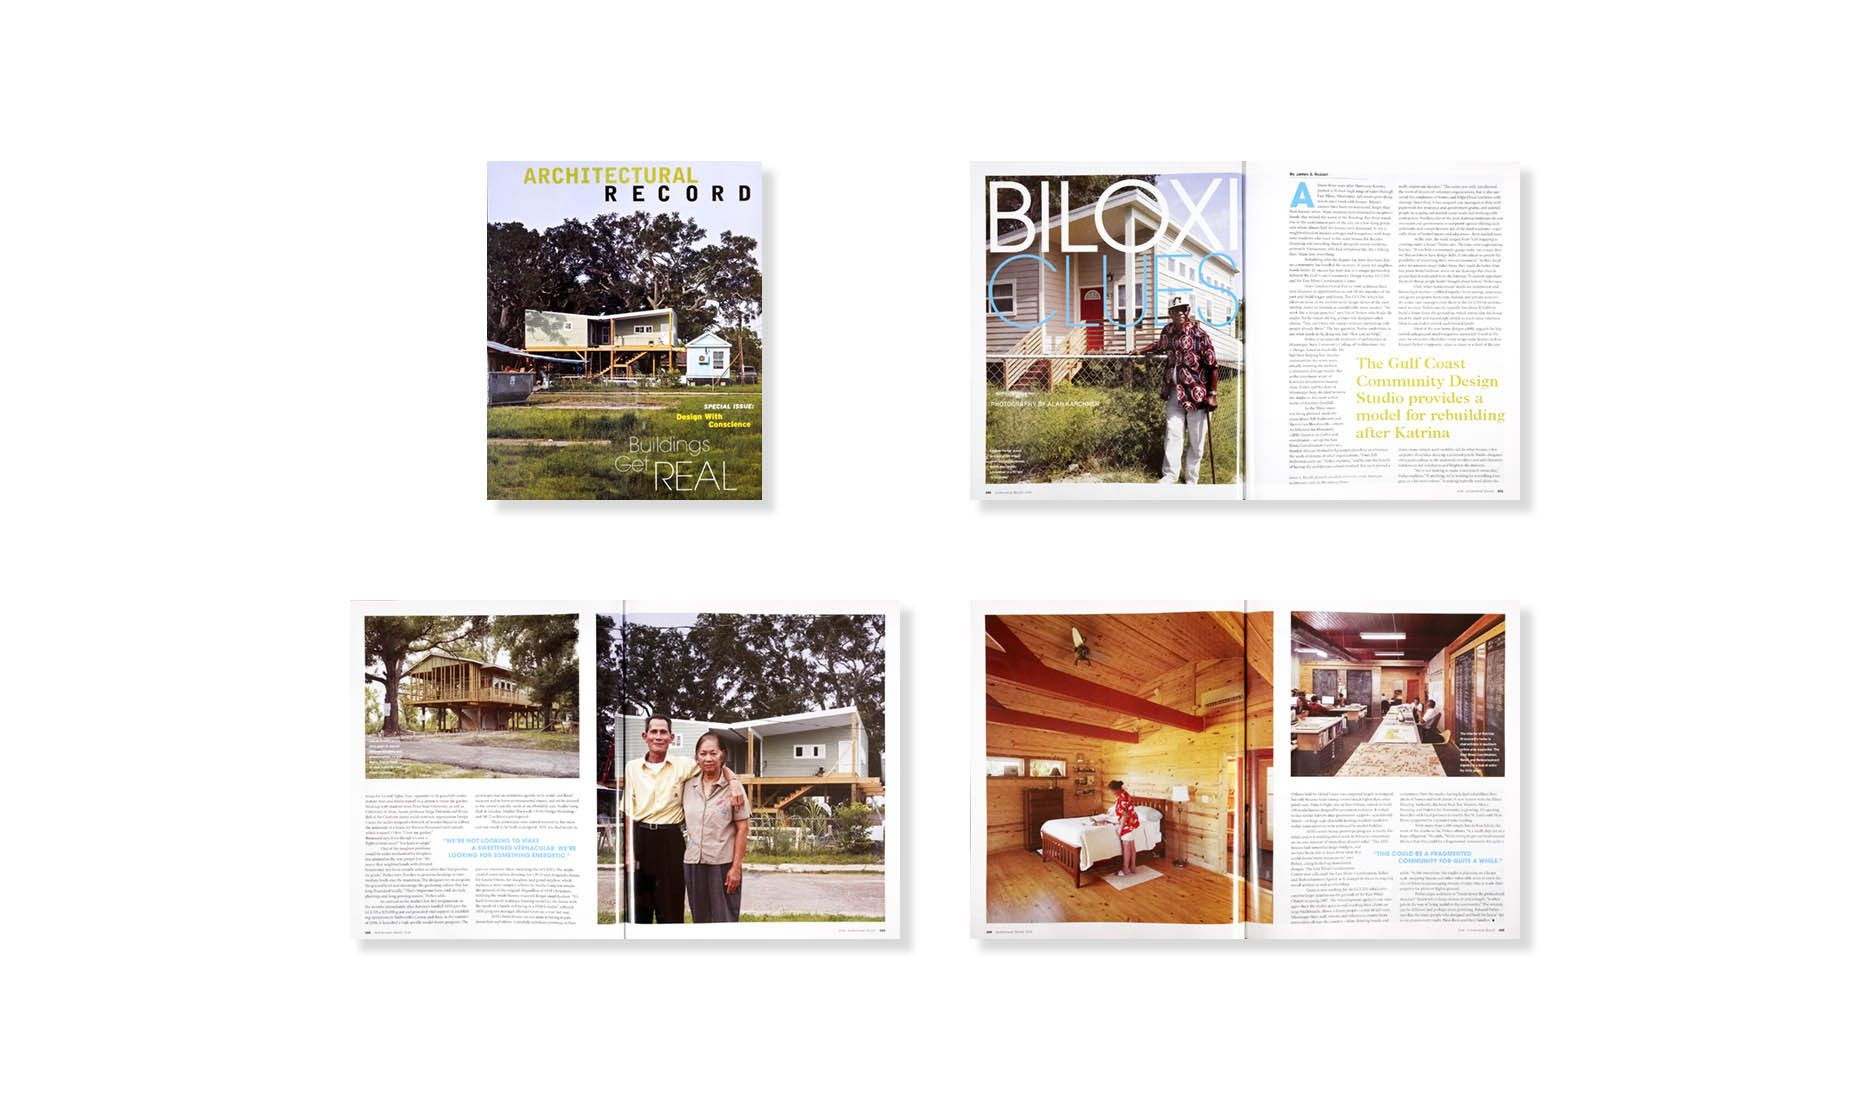 ARCHITECTURAL RECORD 10.08  .  GULF COAST COMMUNITY DESIGN STUDIO  .  KATRINA HOUSING